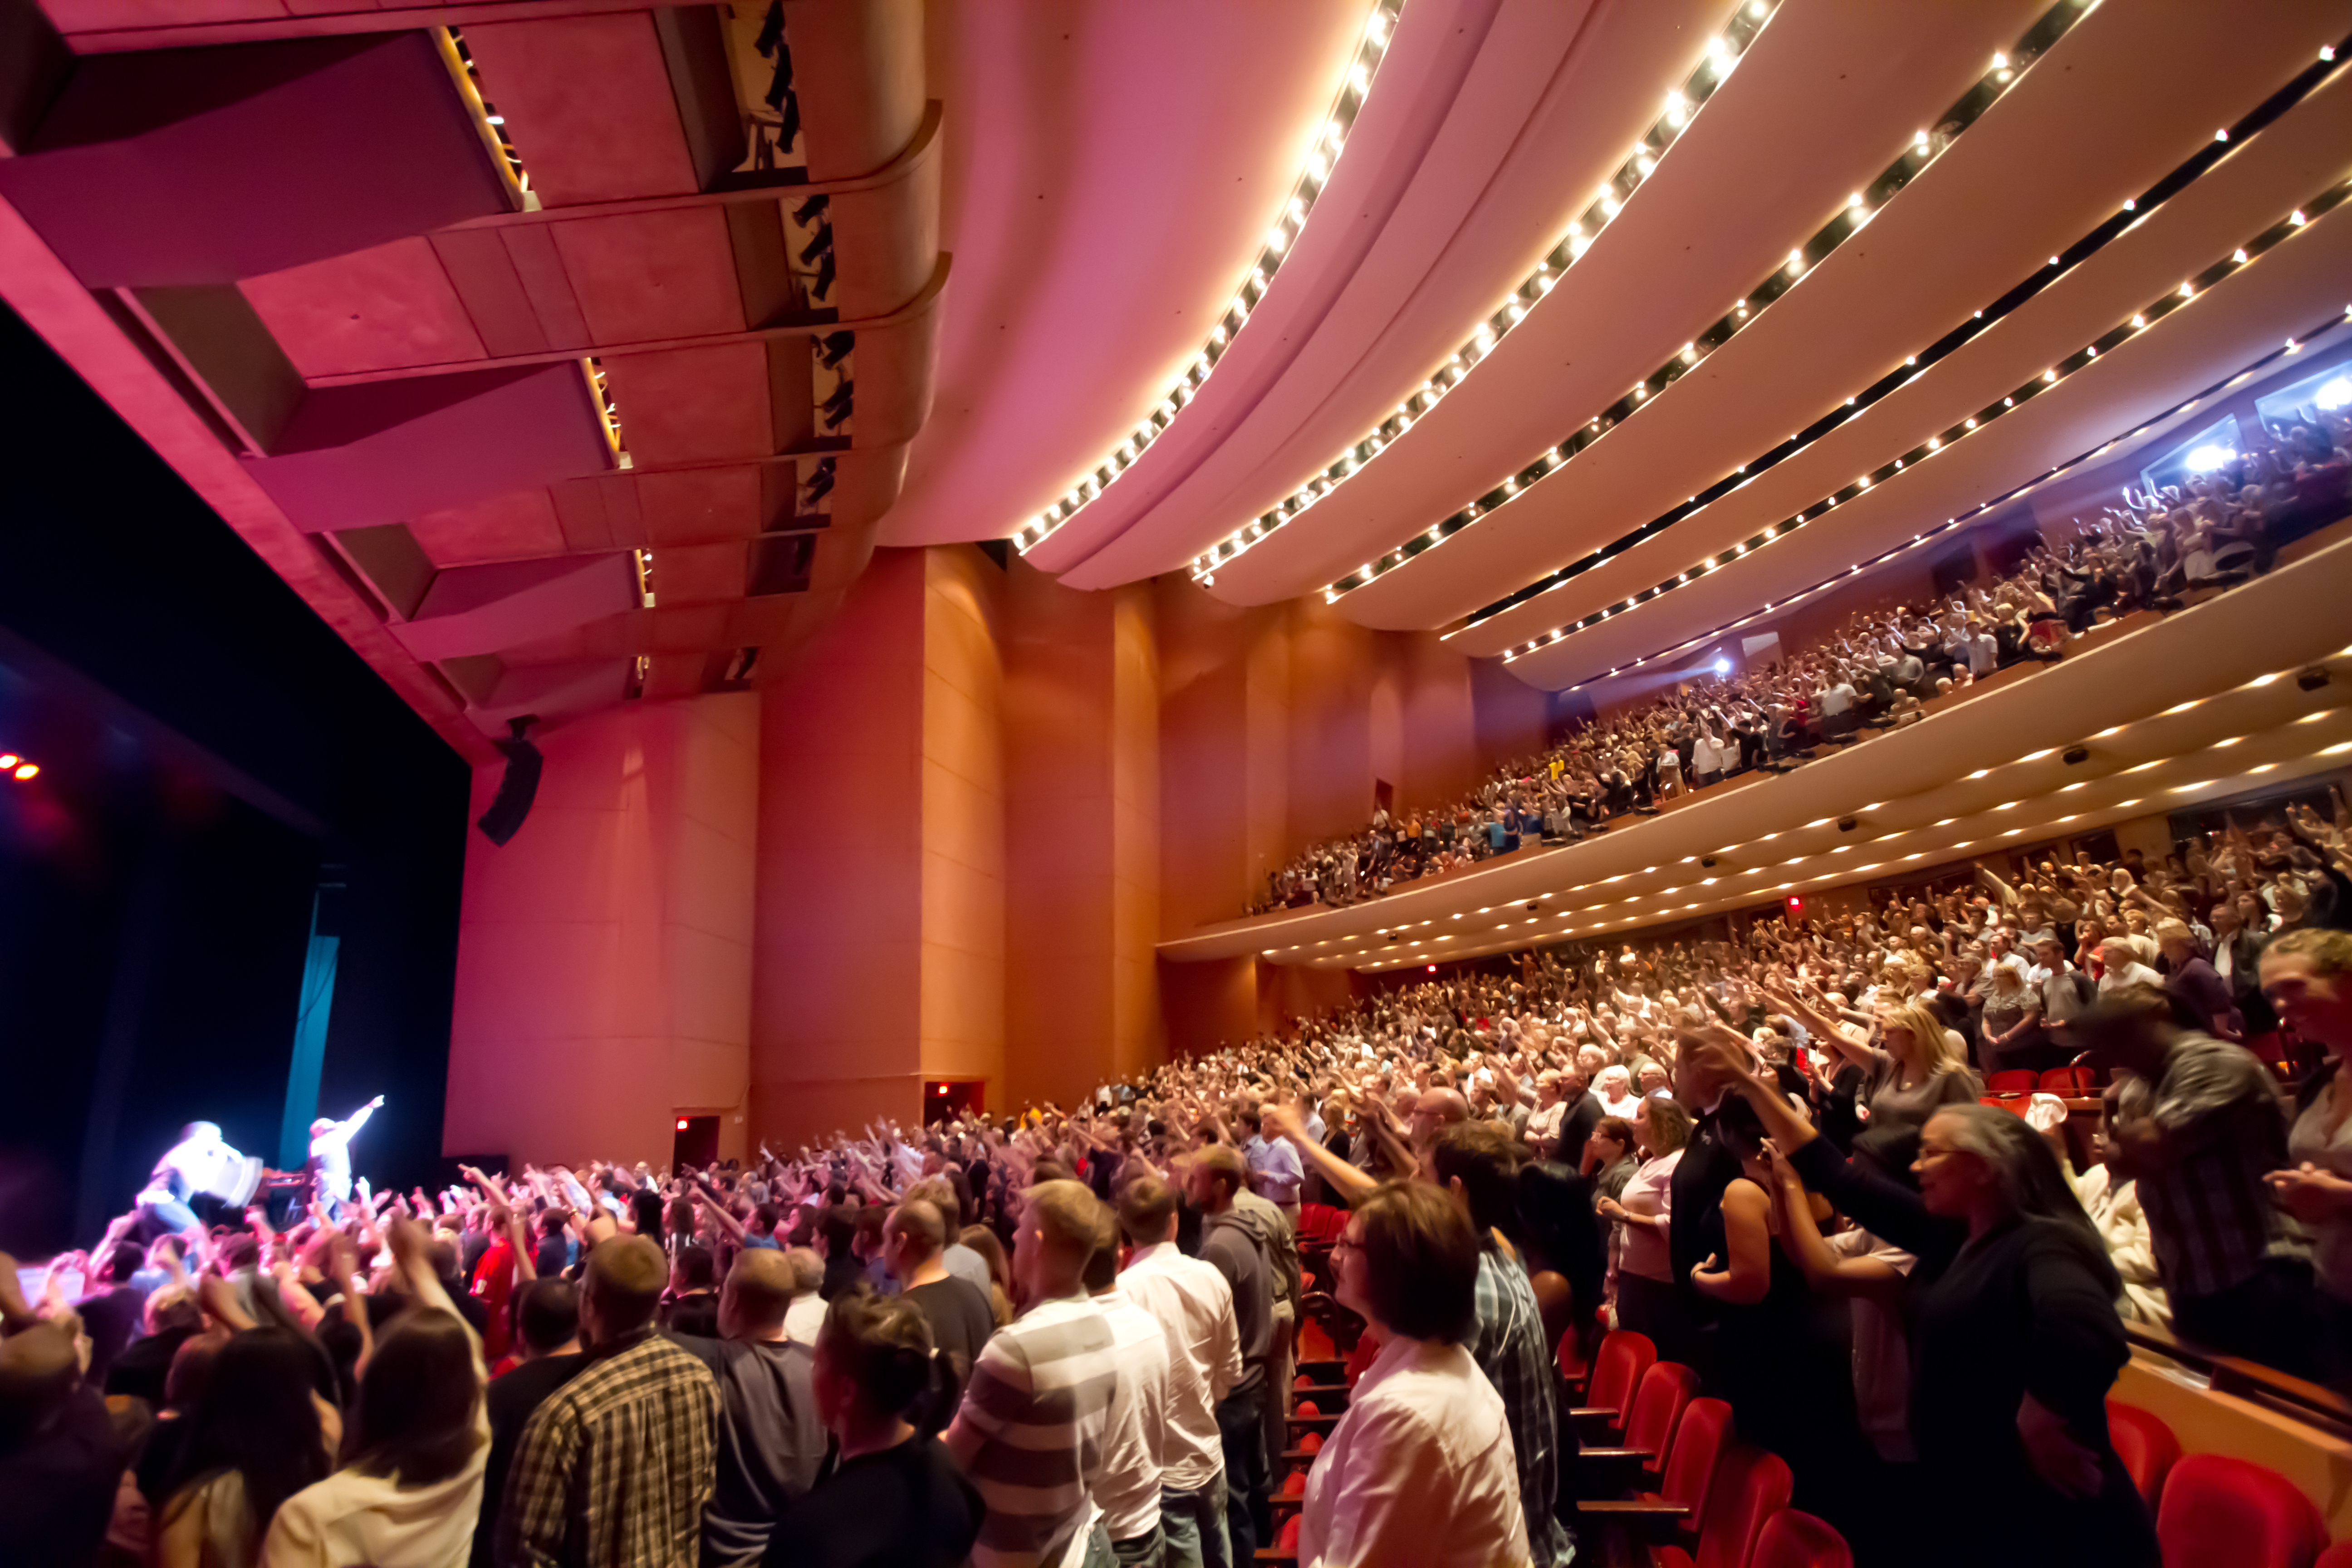 Lincoln Ne Events Popular Lied Center Events Approaching Sold Out Crowds From Season